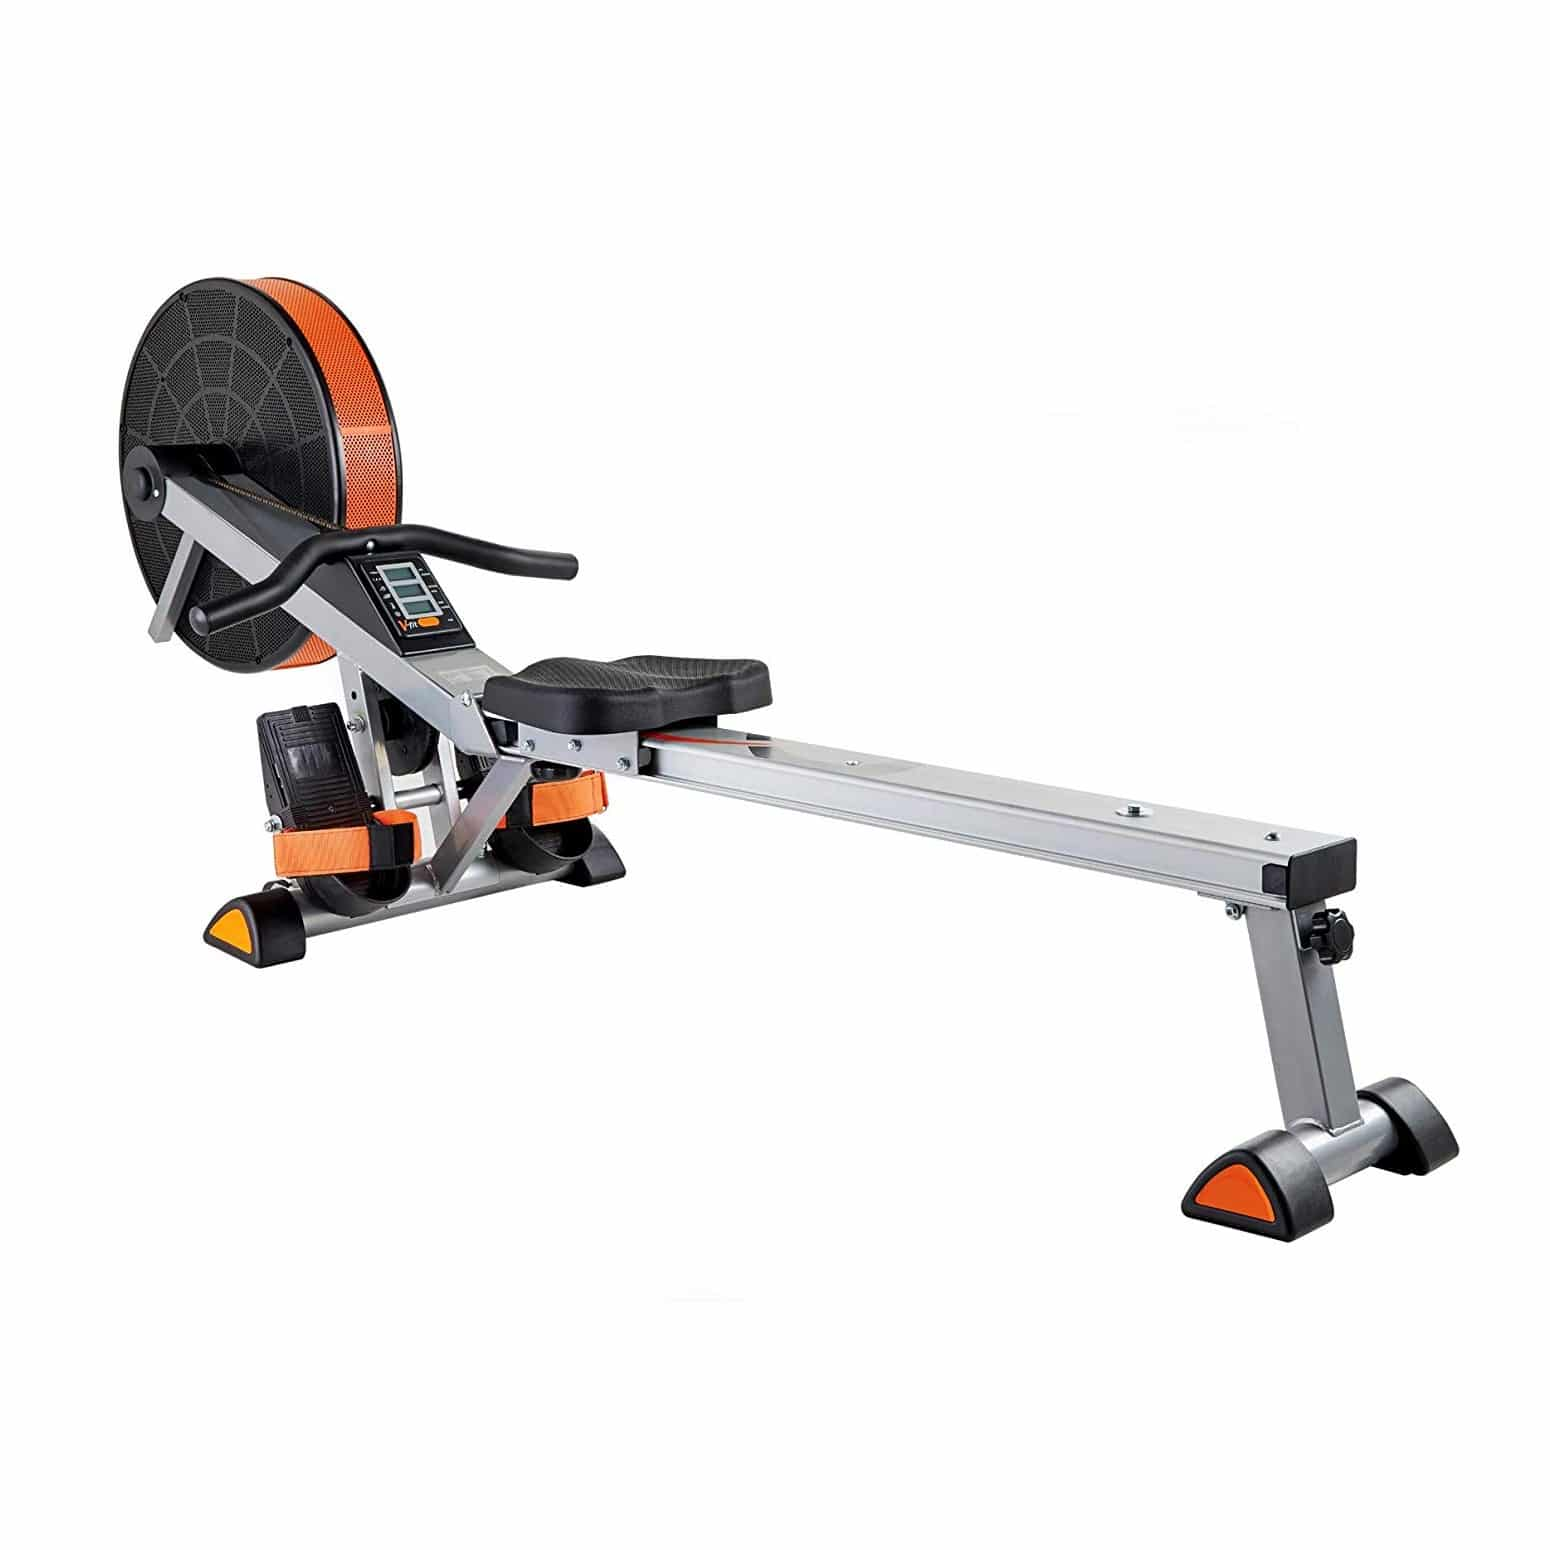 V-fit Tornado Air Rower Rowing Machine